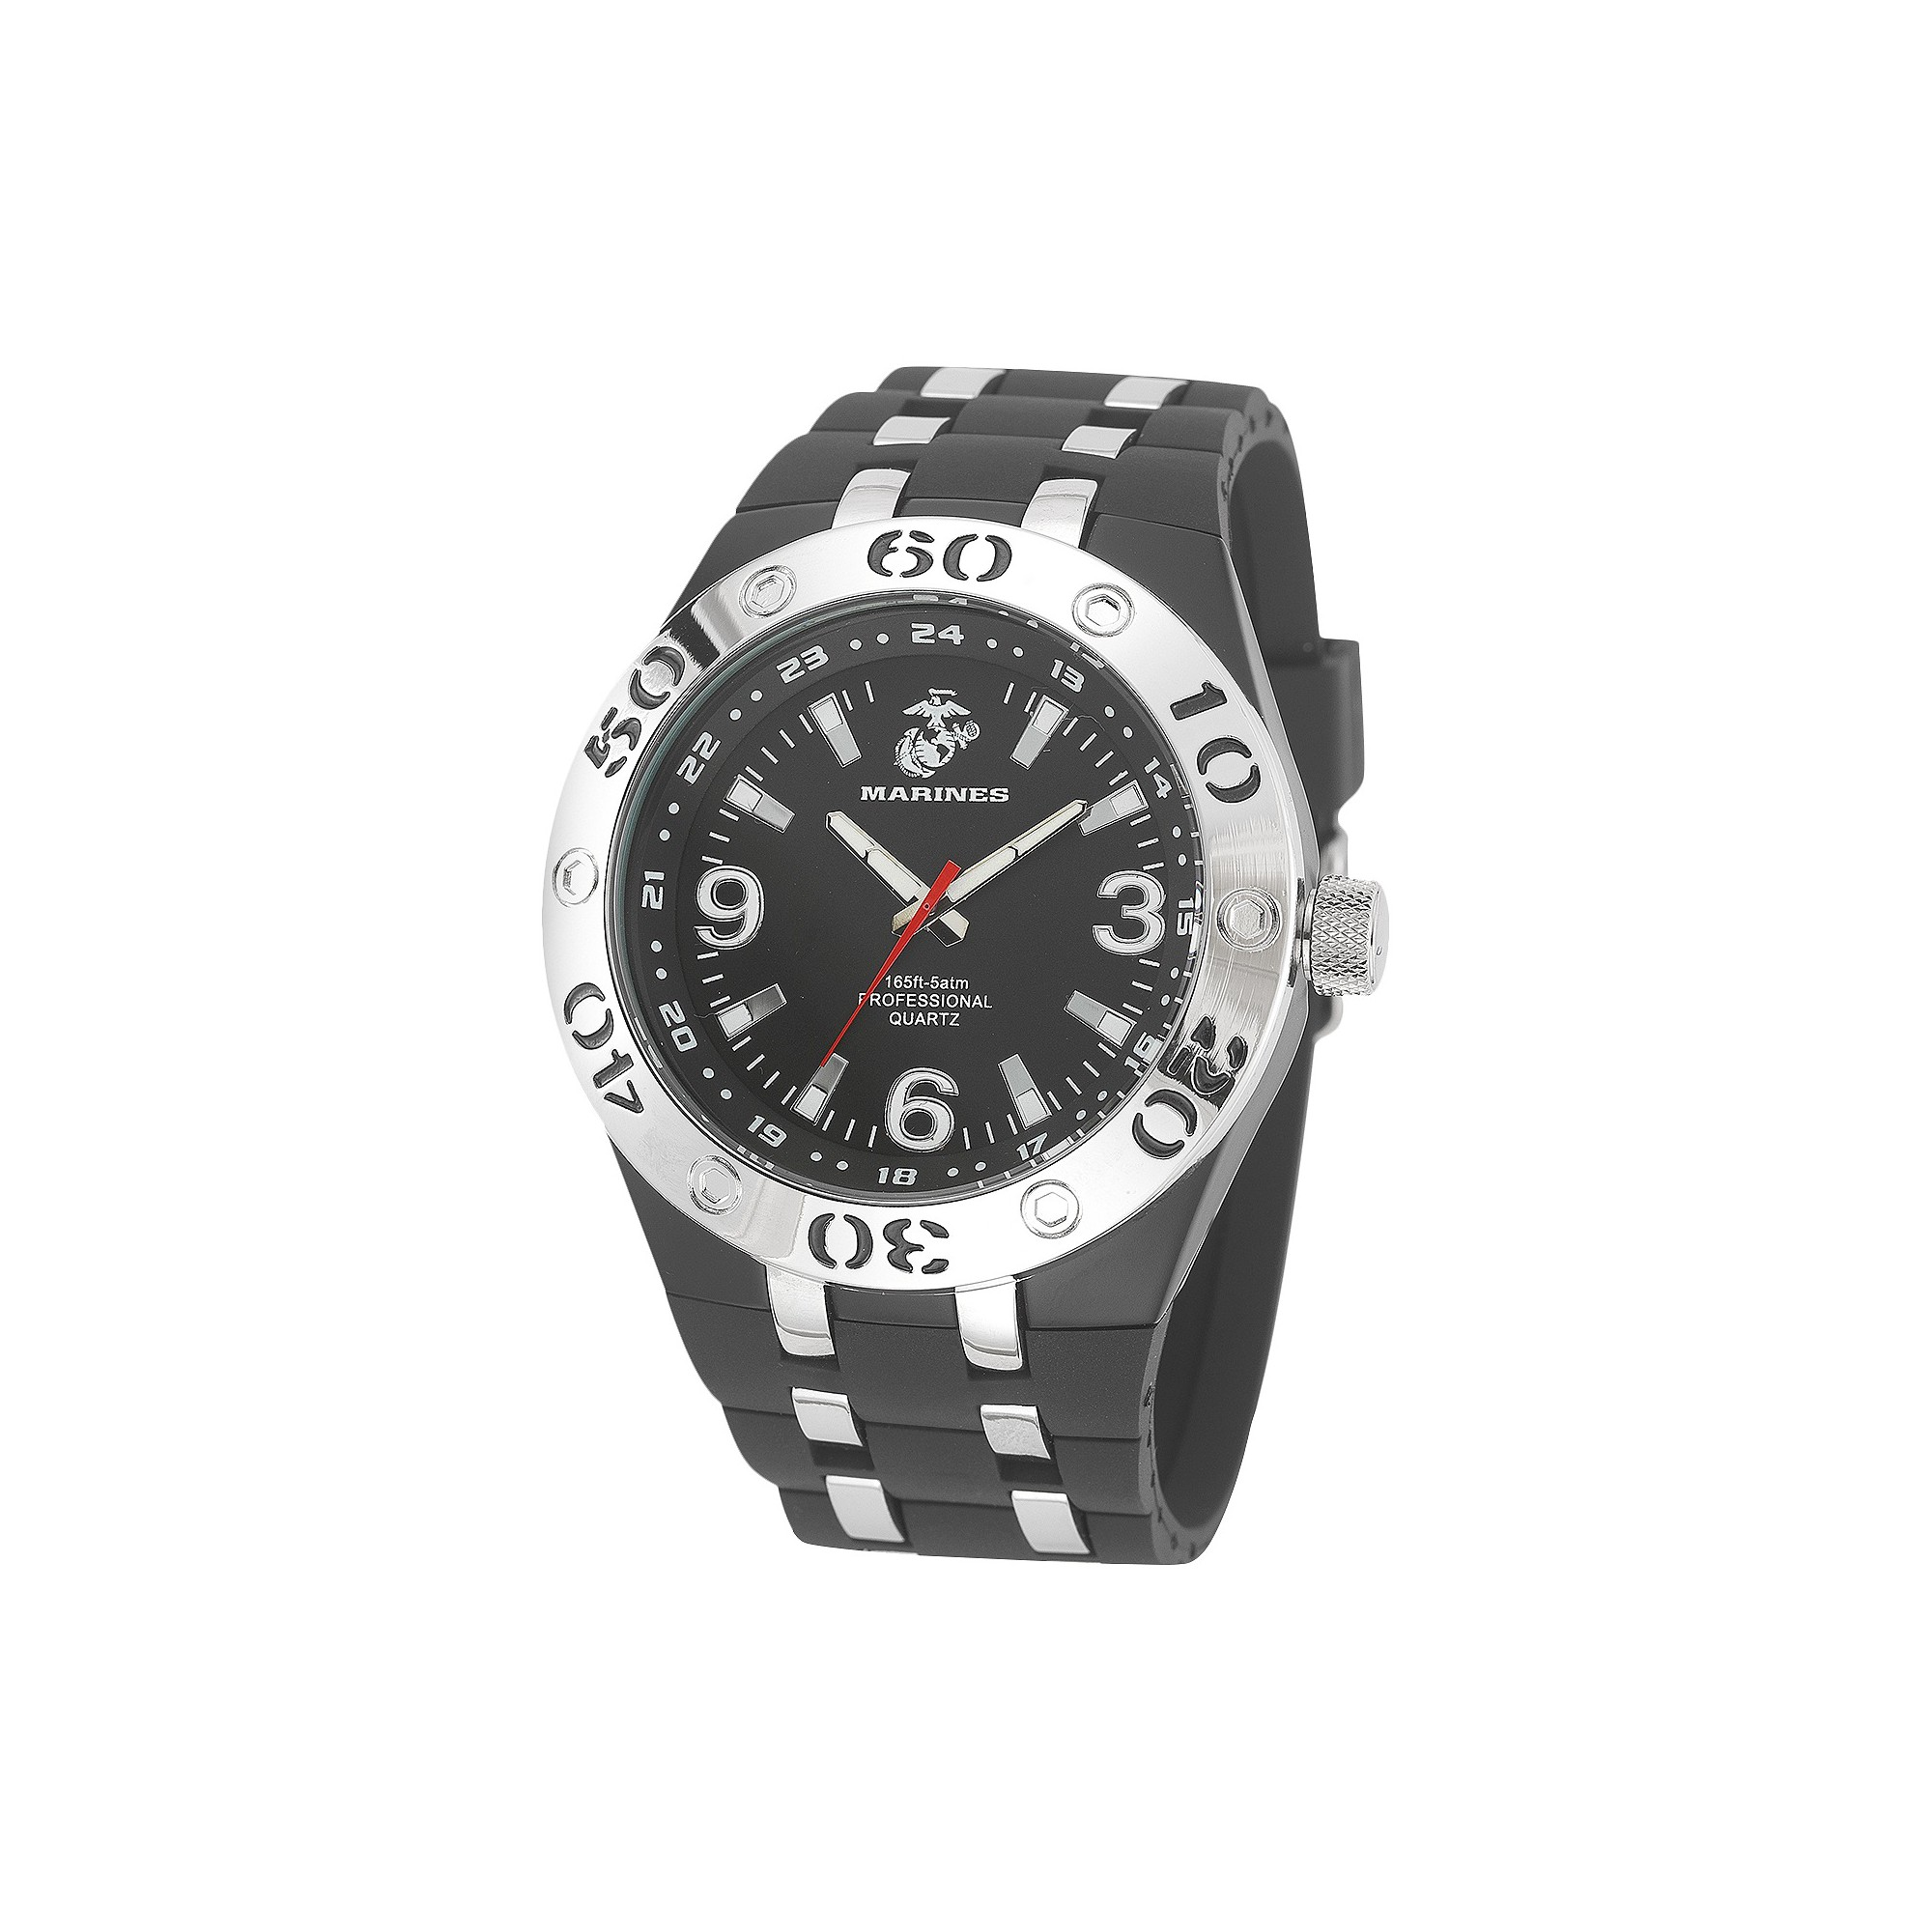 s watches for armor item in men police sale watch mens